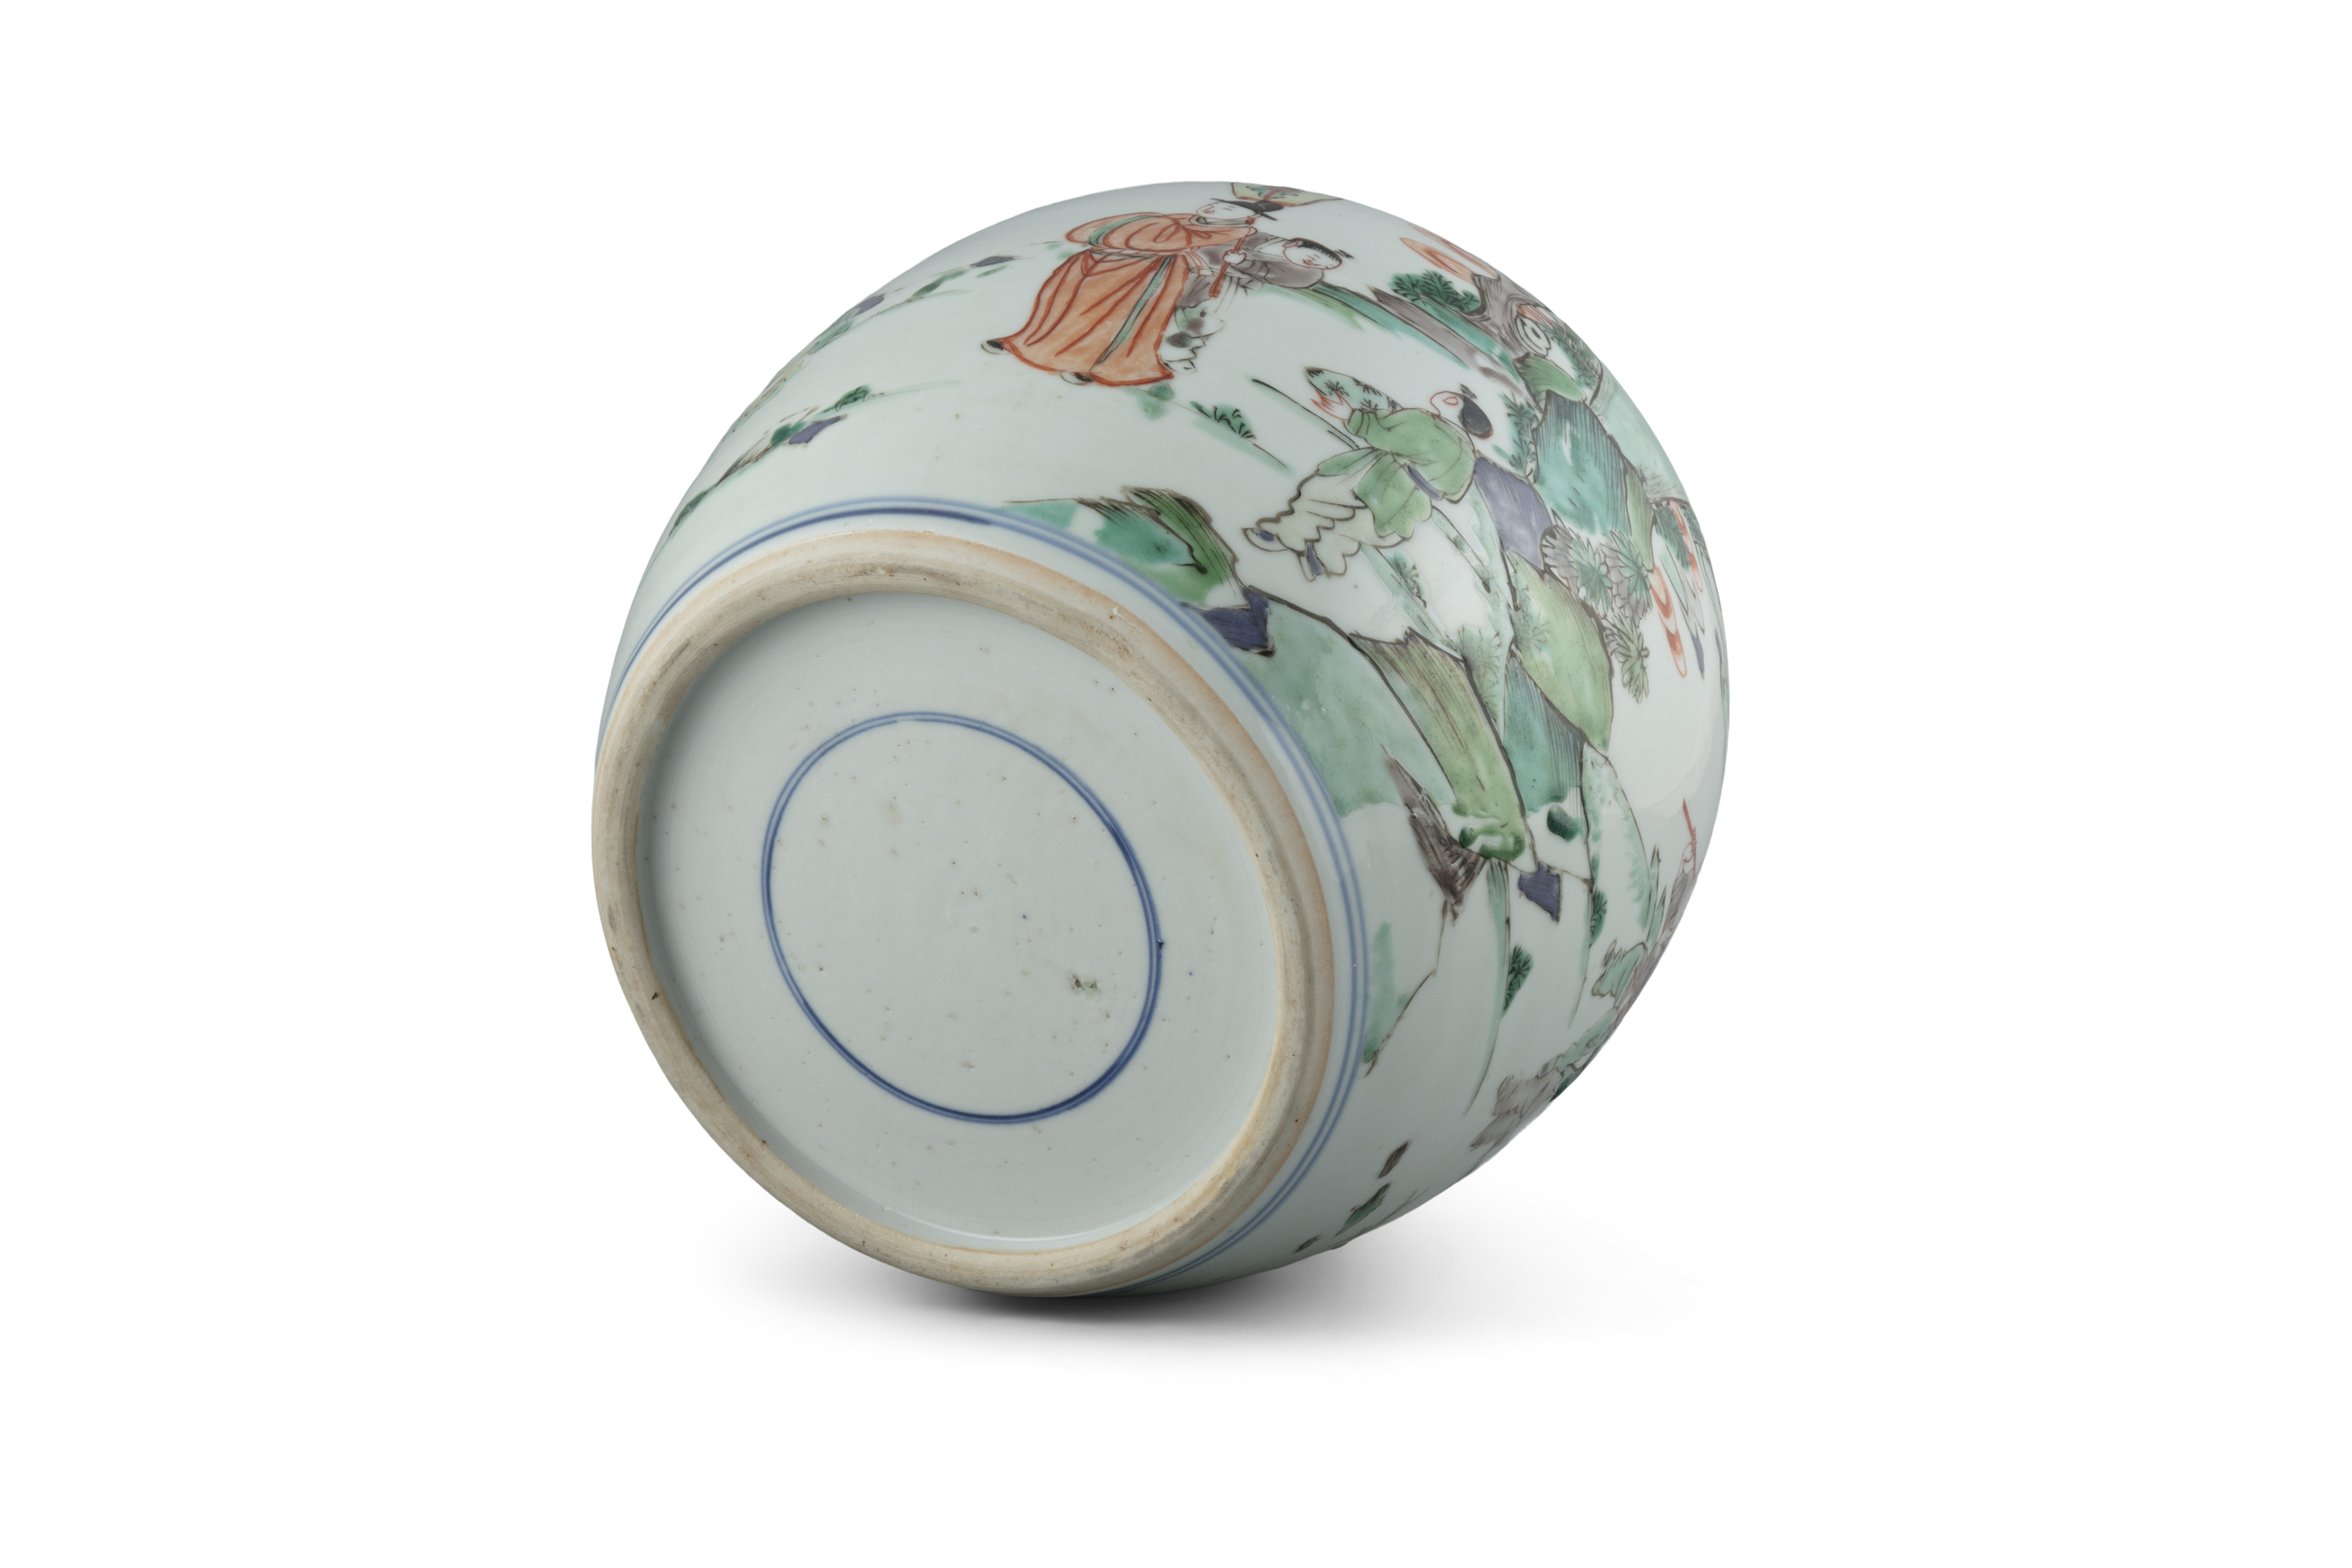 A FAMILLE VERTE 'BOY AND QILIN' PORCELAIN GINGER JAR China, Qing Dynasty, Kangxi period Adorned in - Image 19 of 20